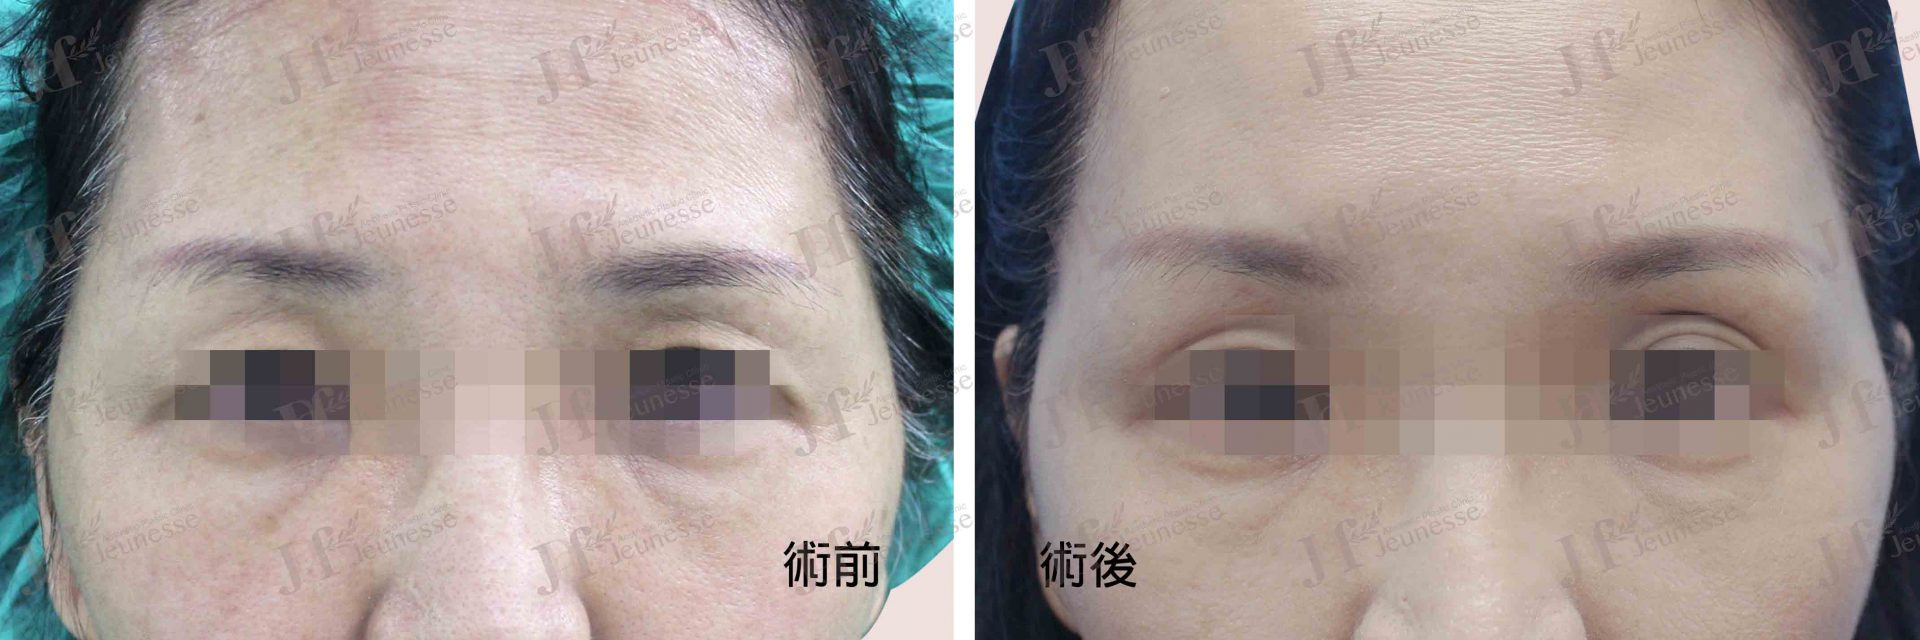 Forehead lifting 正面-浮水印